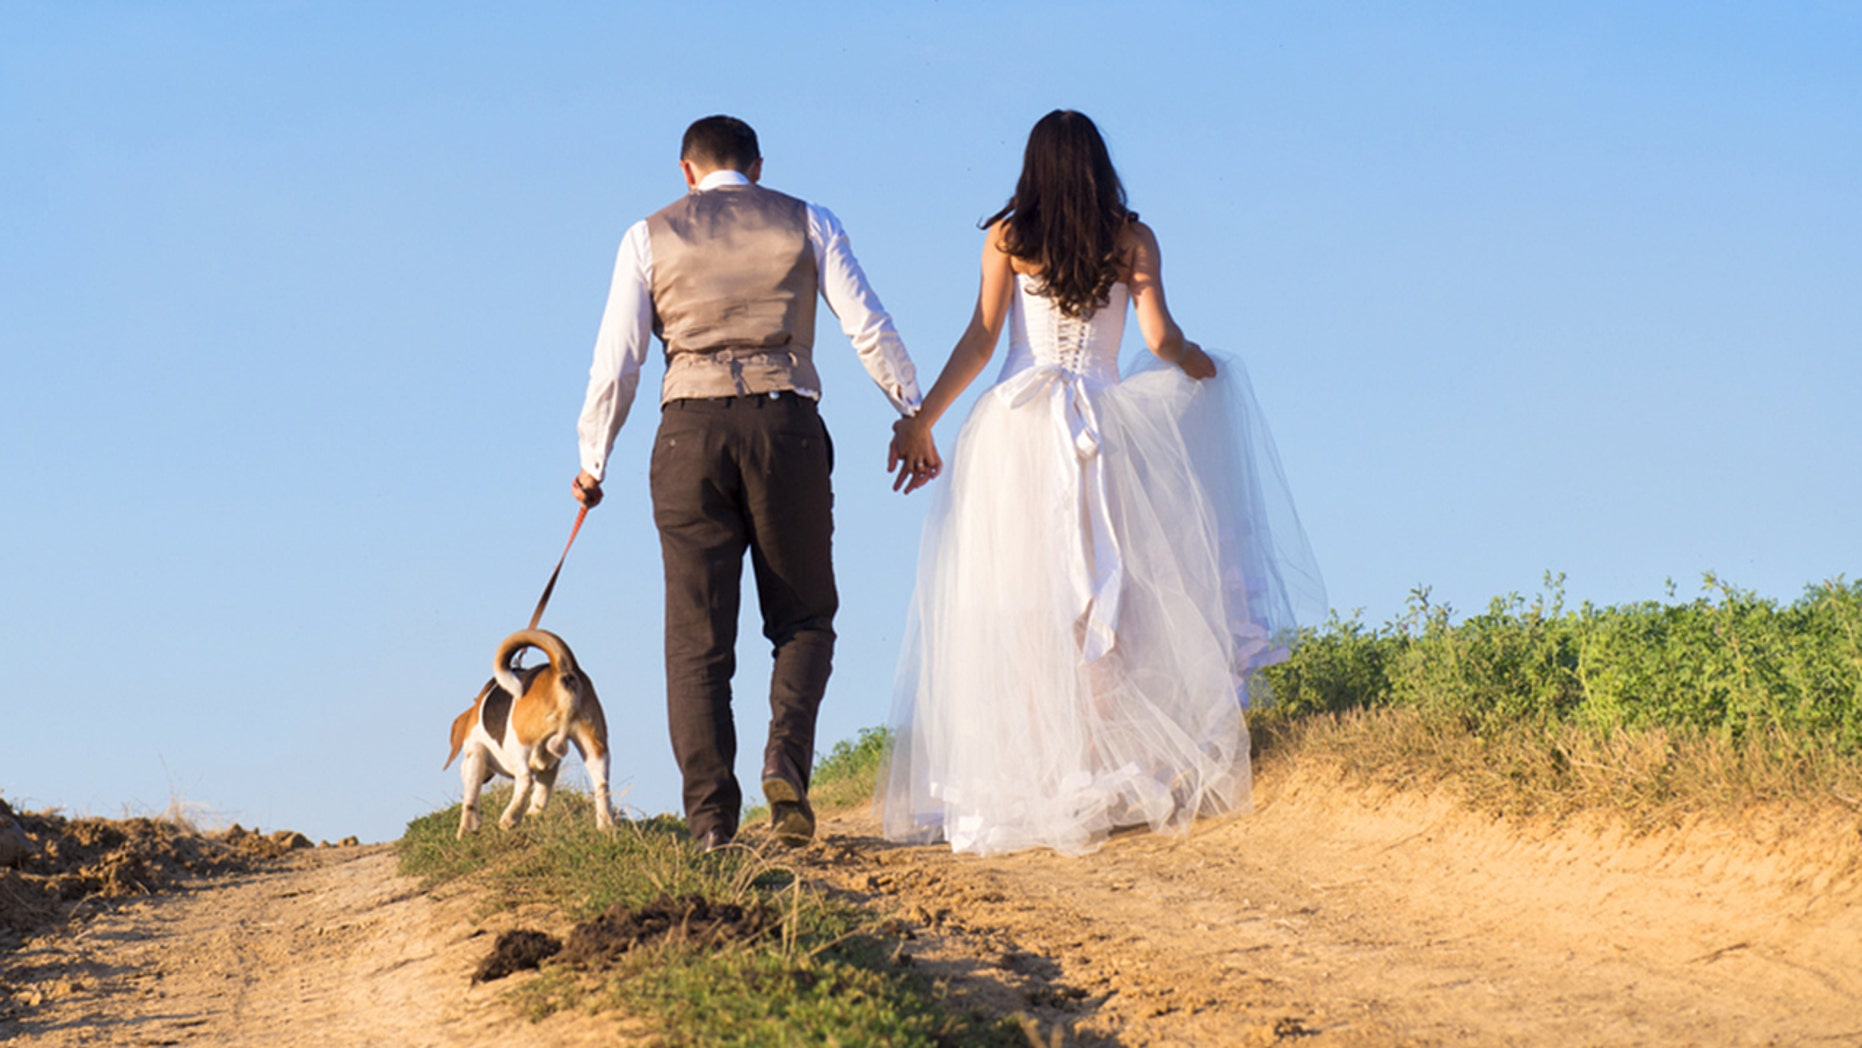 A couple wanted to include their dog (not pictured) in their special day in a unique way.